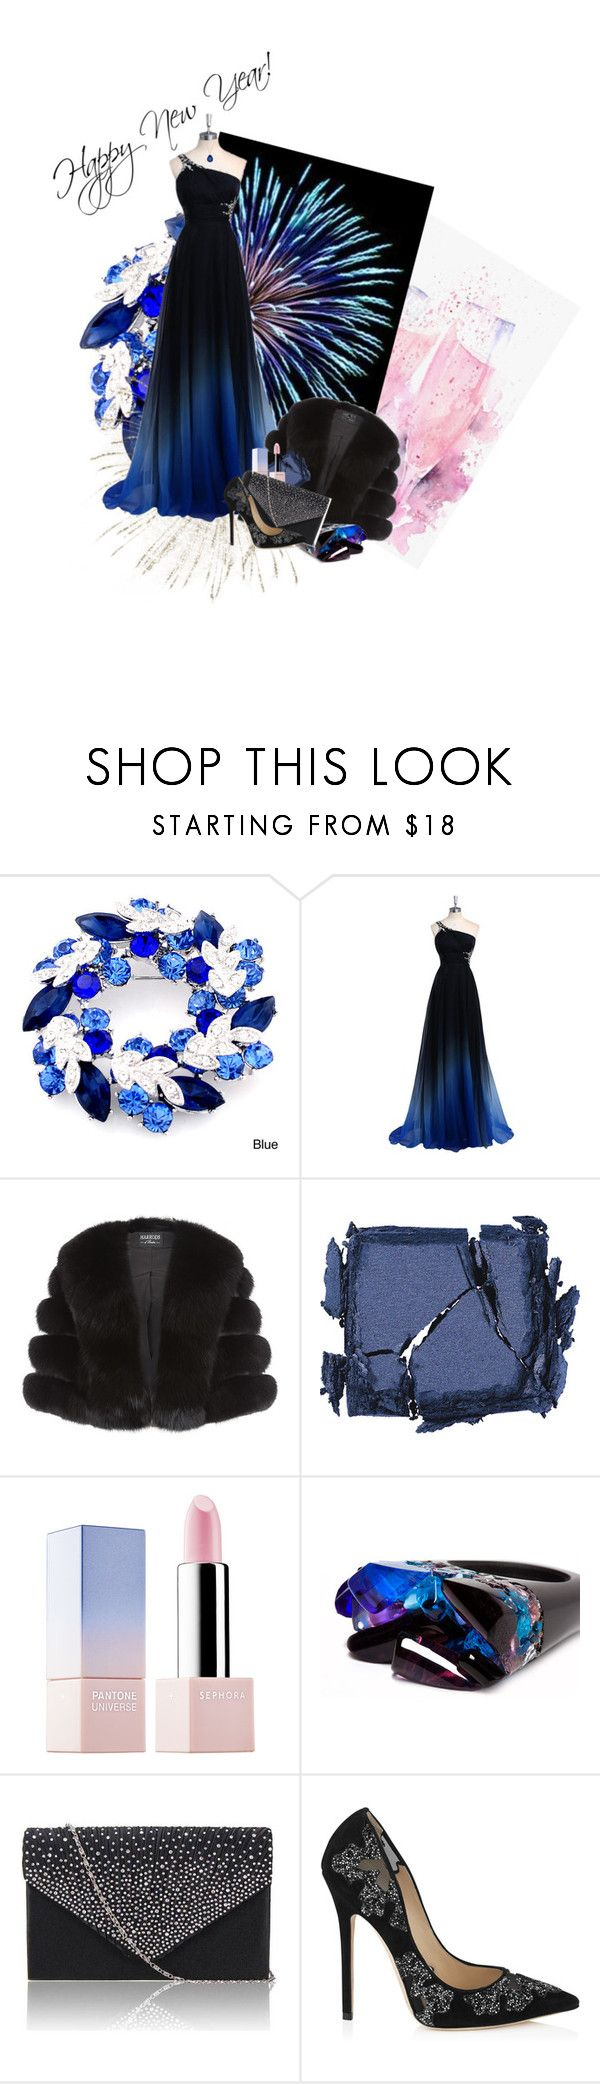 """Happy New Year"" by anna-jarovaja-v on Polyvore featuring Harrods, Surratt, Sephora Collection, Pasionae, Jimmy Choo and Baccarat"